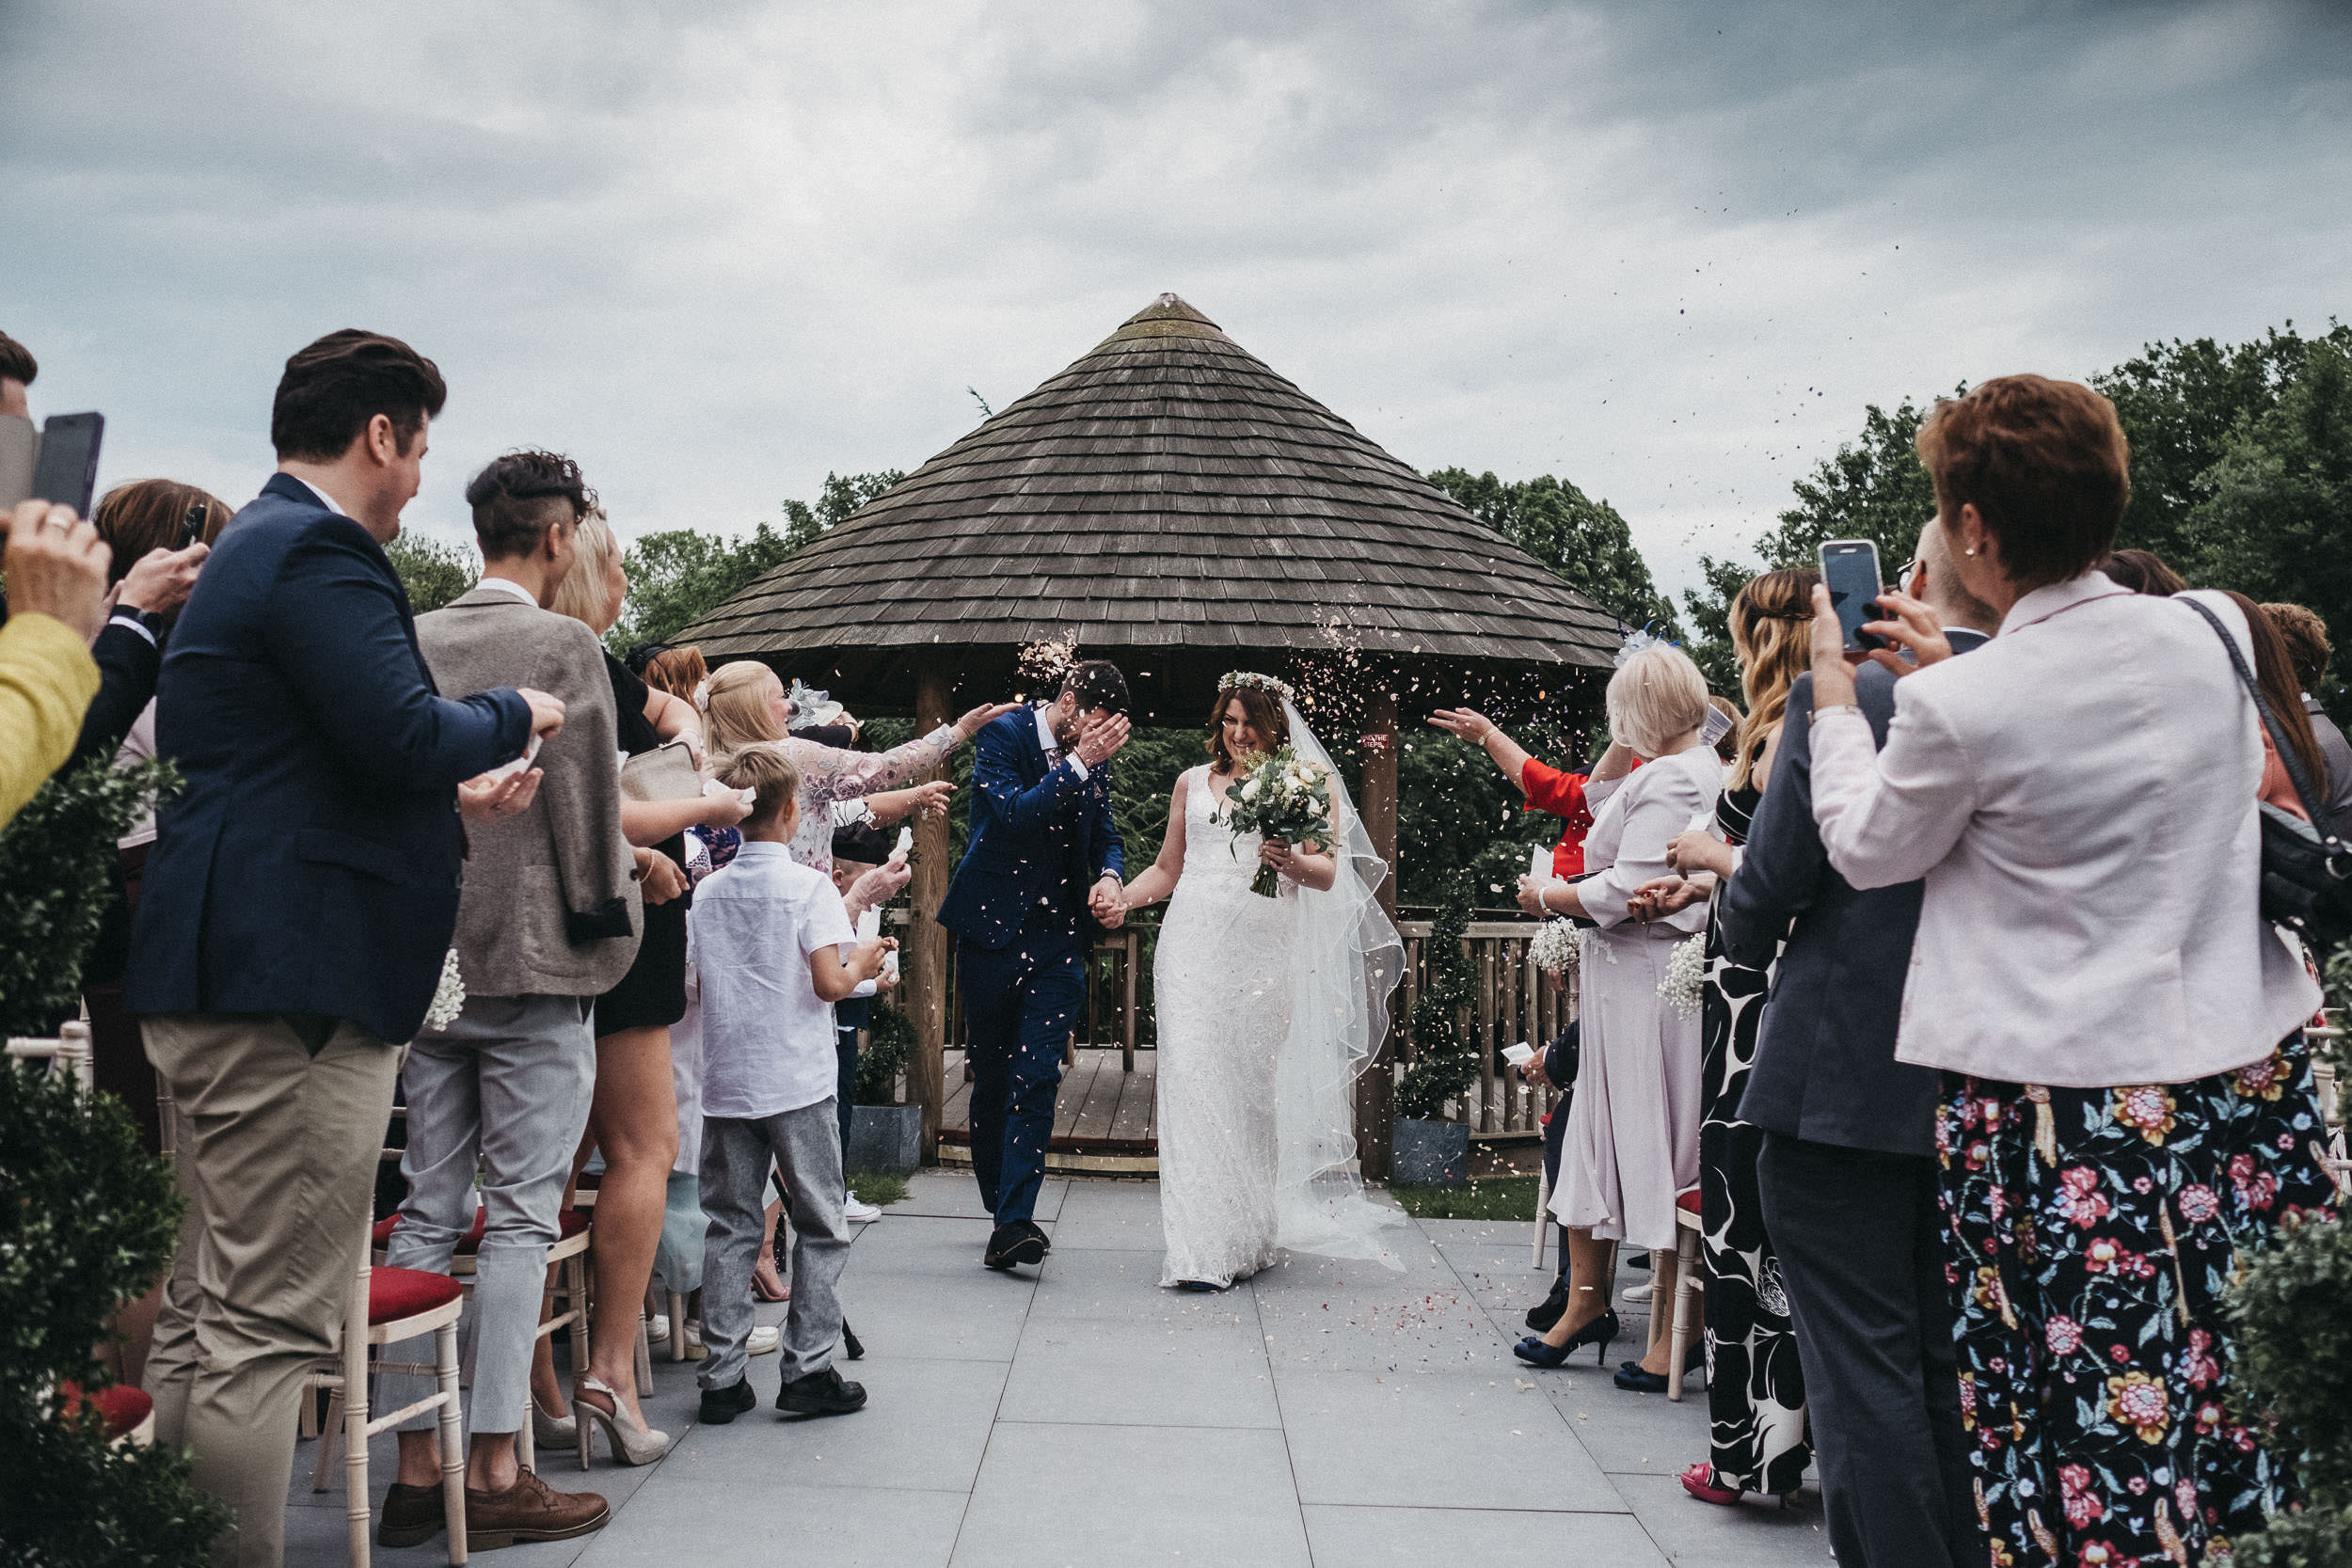 Guests throw confetti in grooms face